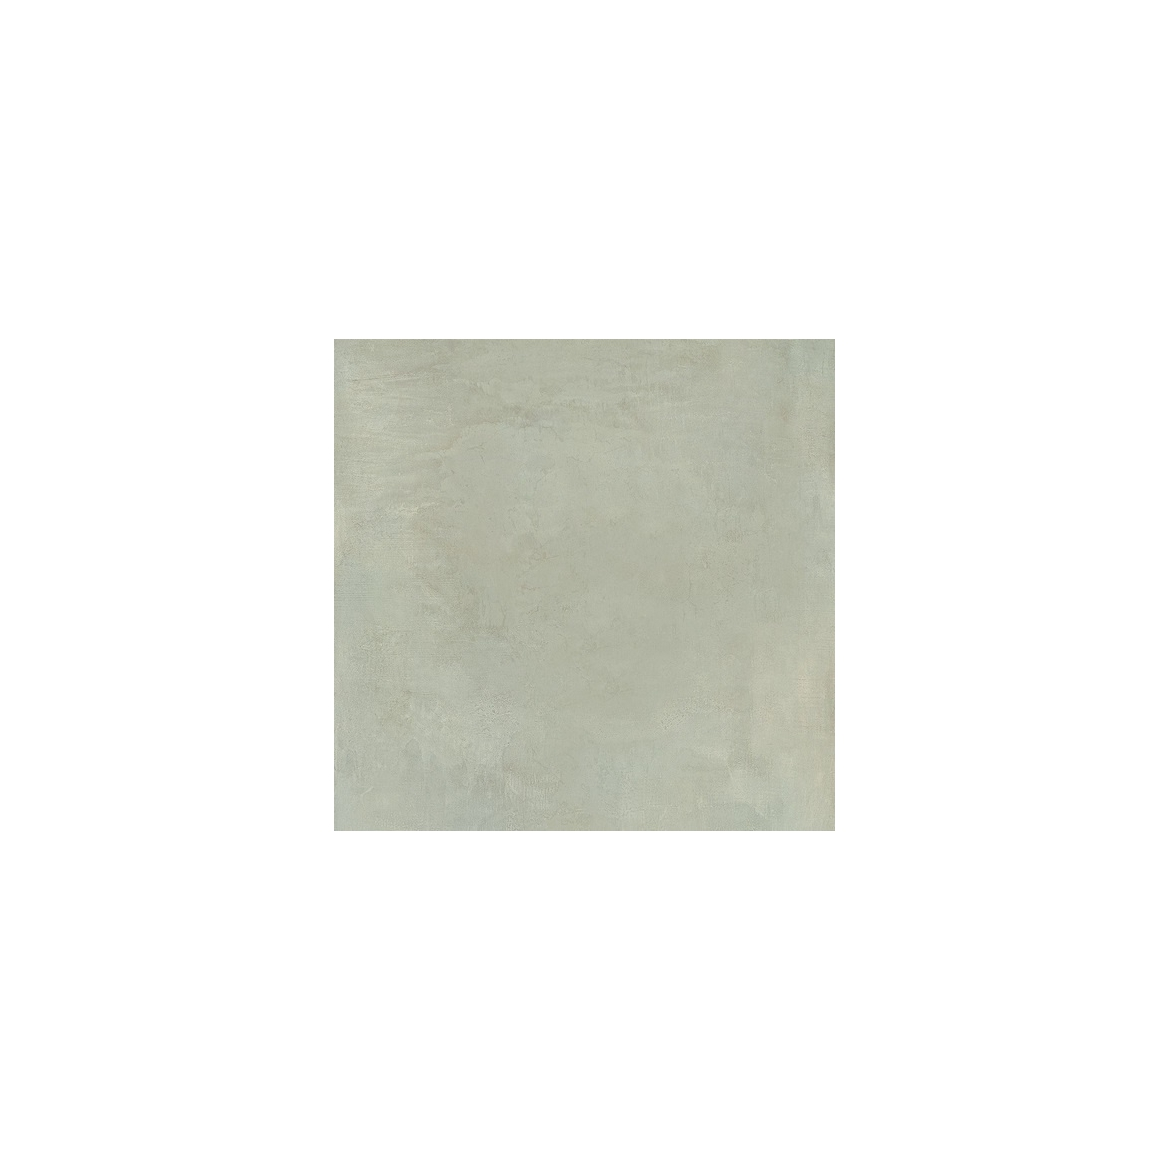 https://cerdesign.pl/523-large_default/p12902-cotto-petrus-emotion-taupe-60x60.jpg